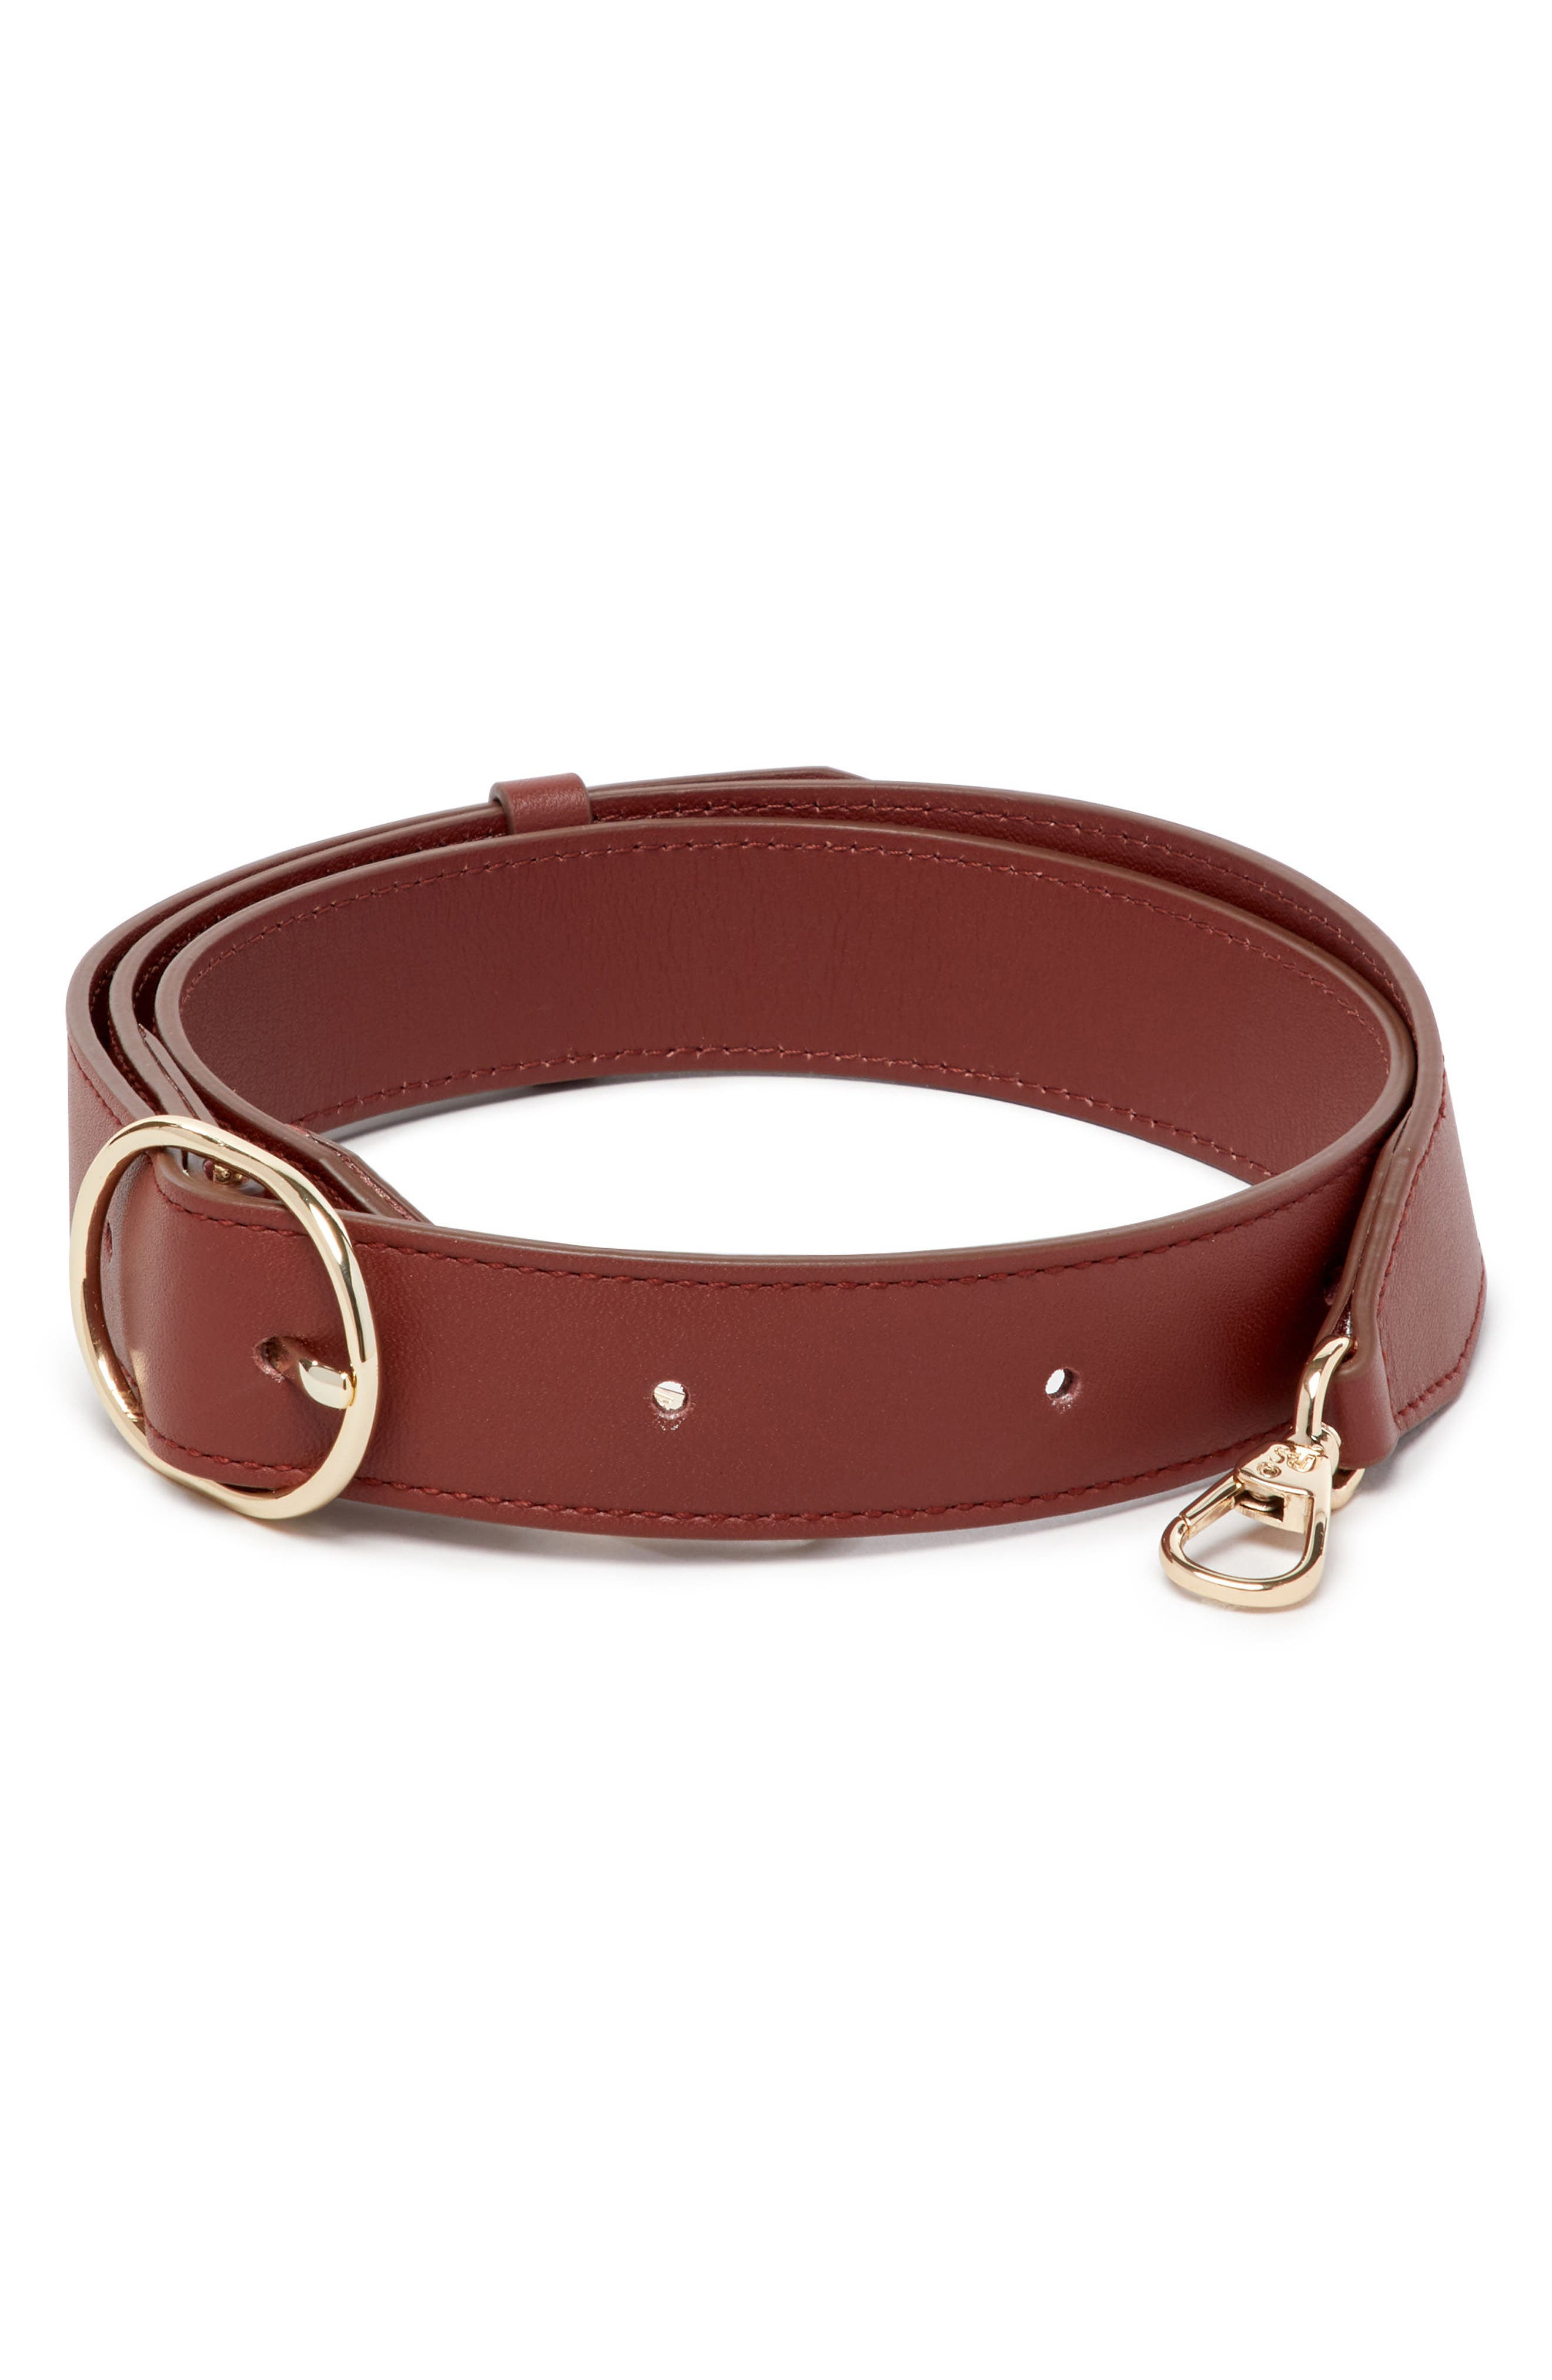 Alternate Image 1 Selected - Pop & Suki Leather Wide Fanny Strap (Nordstrom Exclusive)